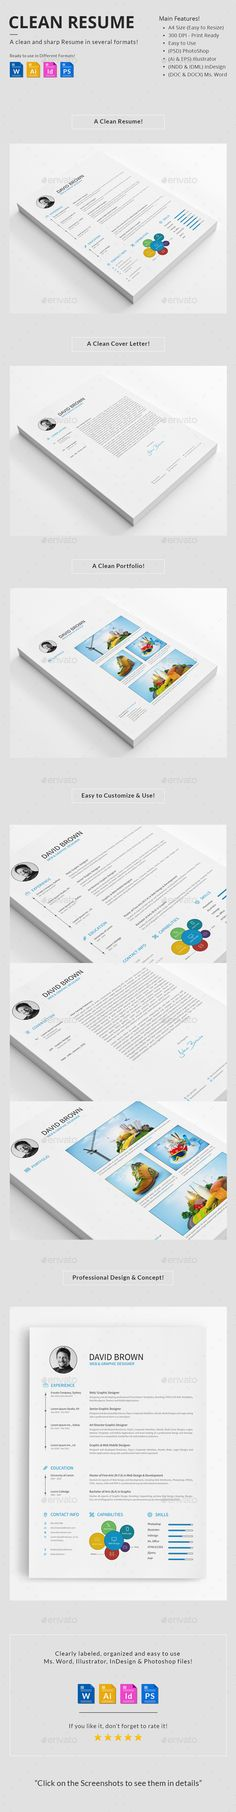 Word Resume Template - Resume Template for Word + Cover Letter - cover letter and resume templates for microsoft word